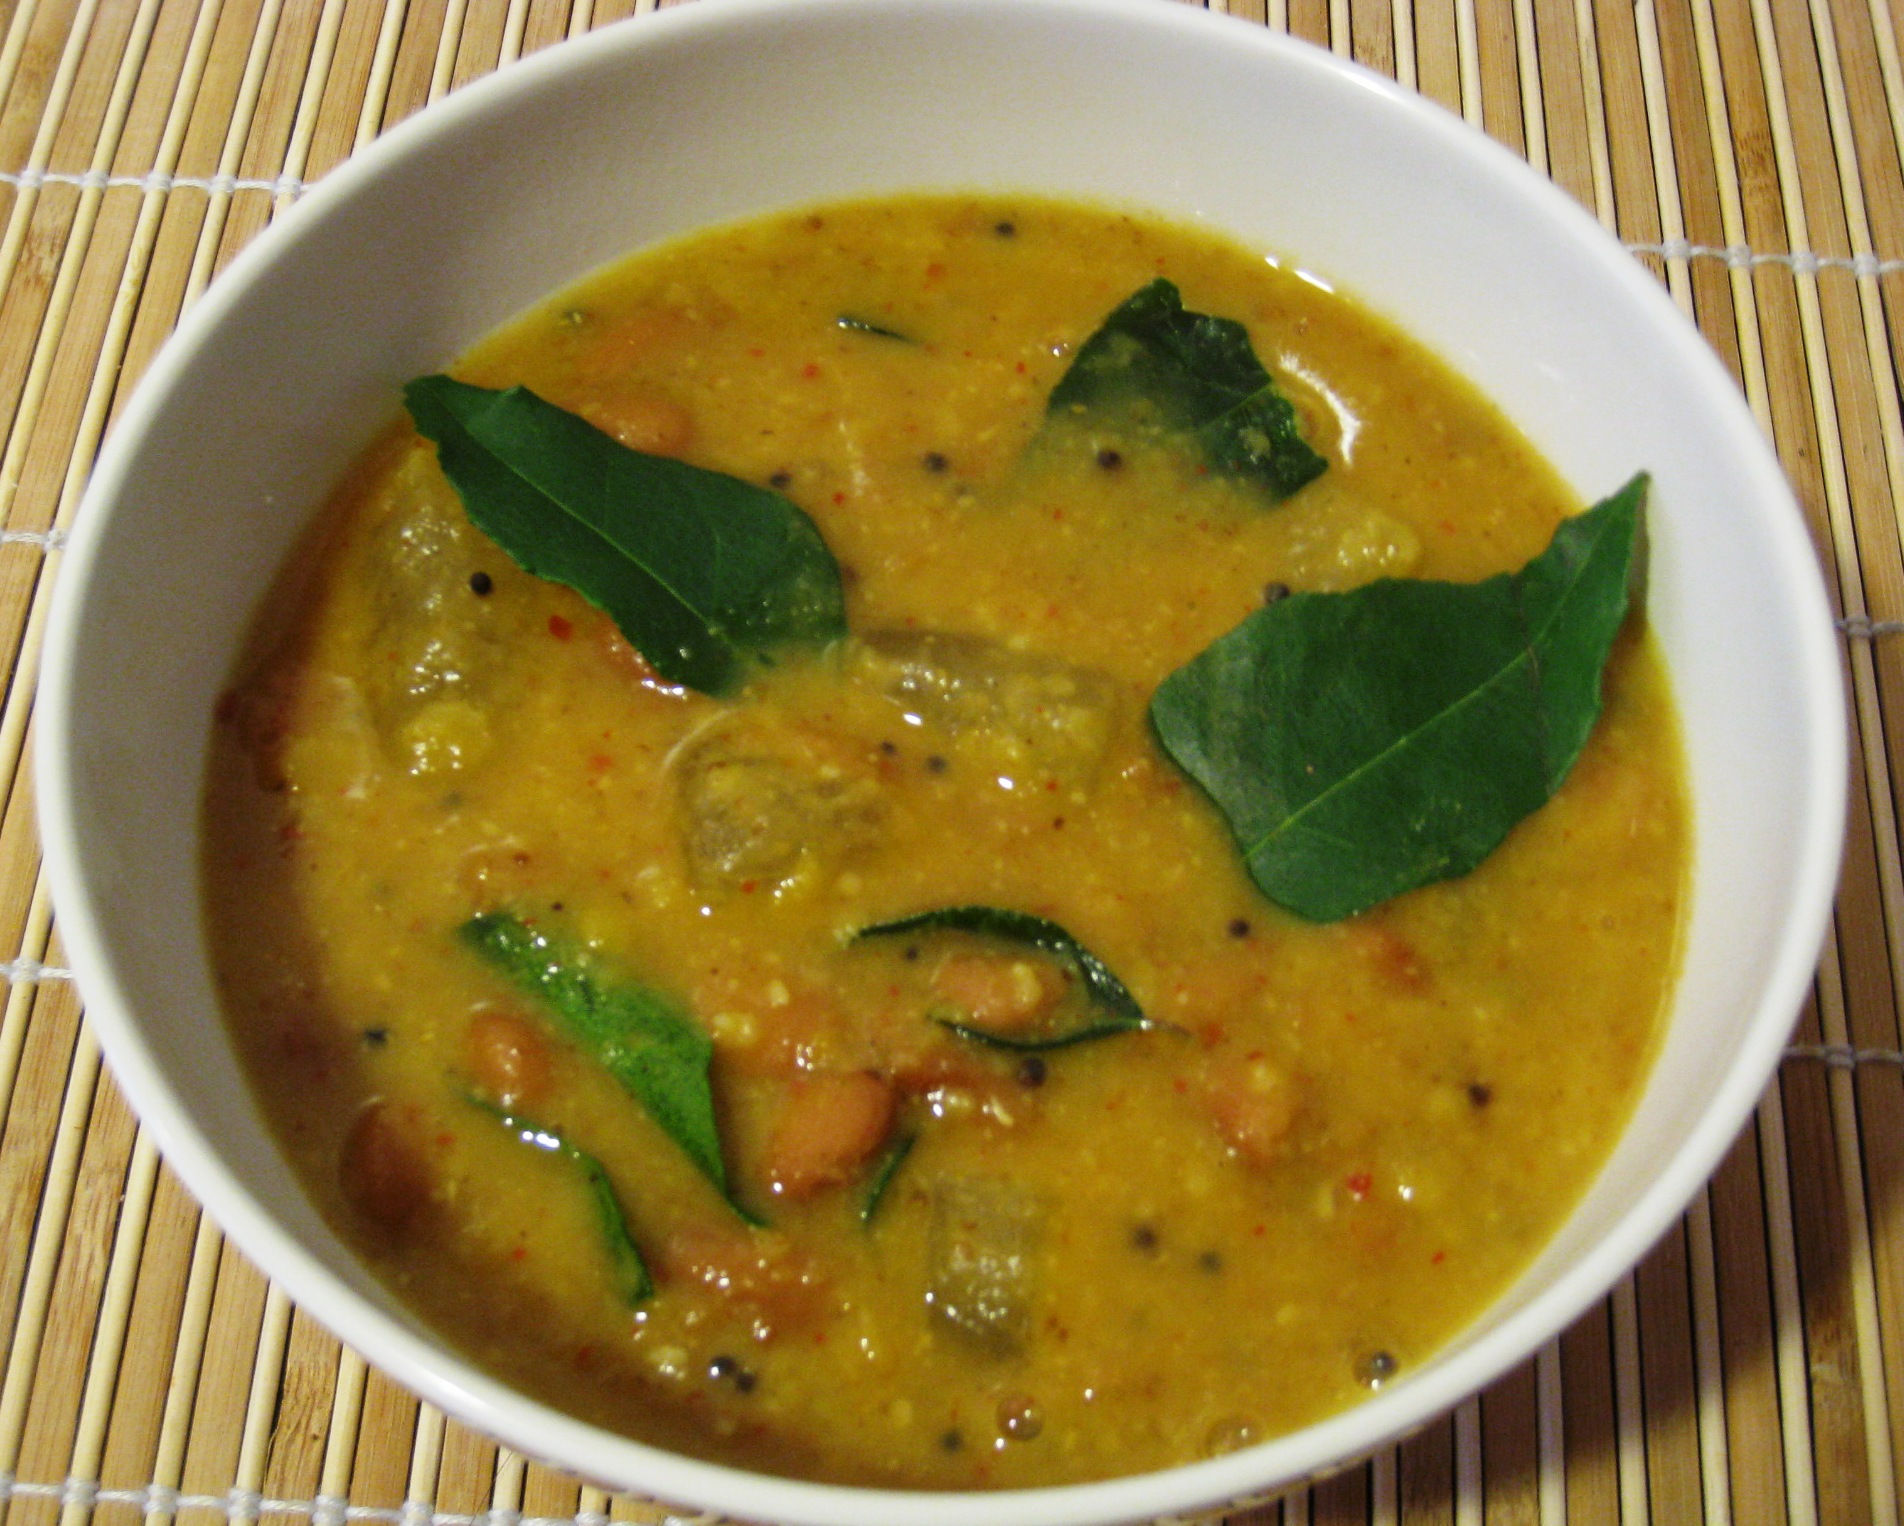 Ash gourd kootu winter melon vegrecipes4u ash gourd kootu is a south indian lentil soup with winter melon and pinto beans if youre in the mood for a warm vegetable soup youll like this easy forumfinder